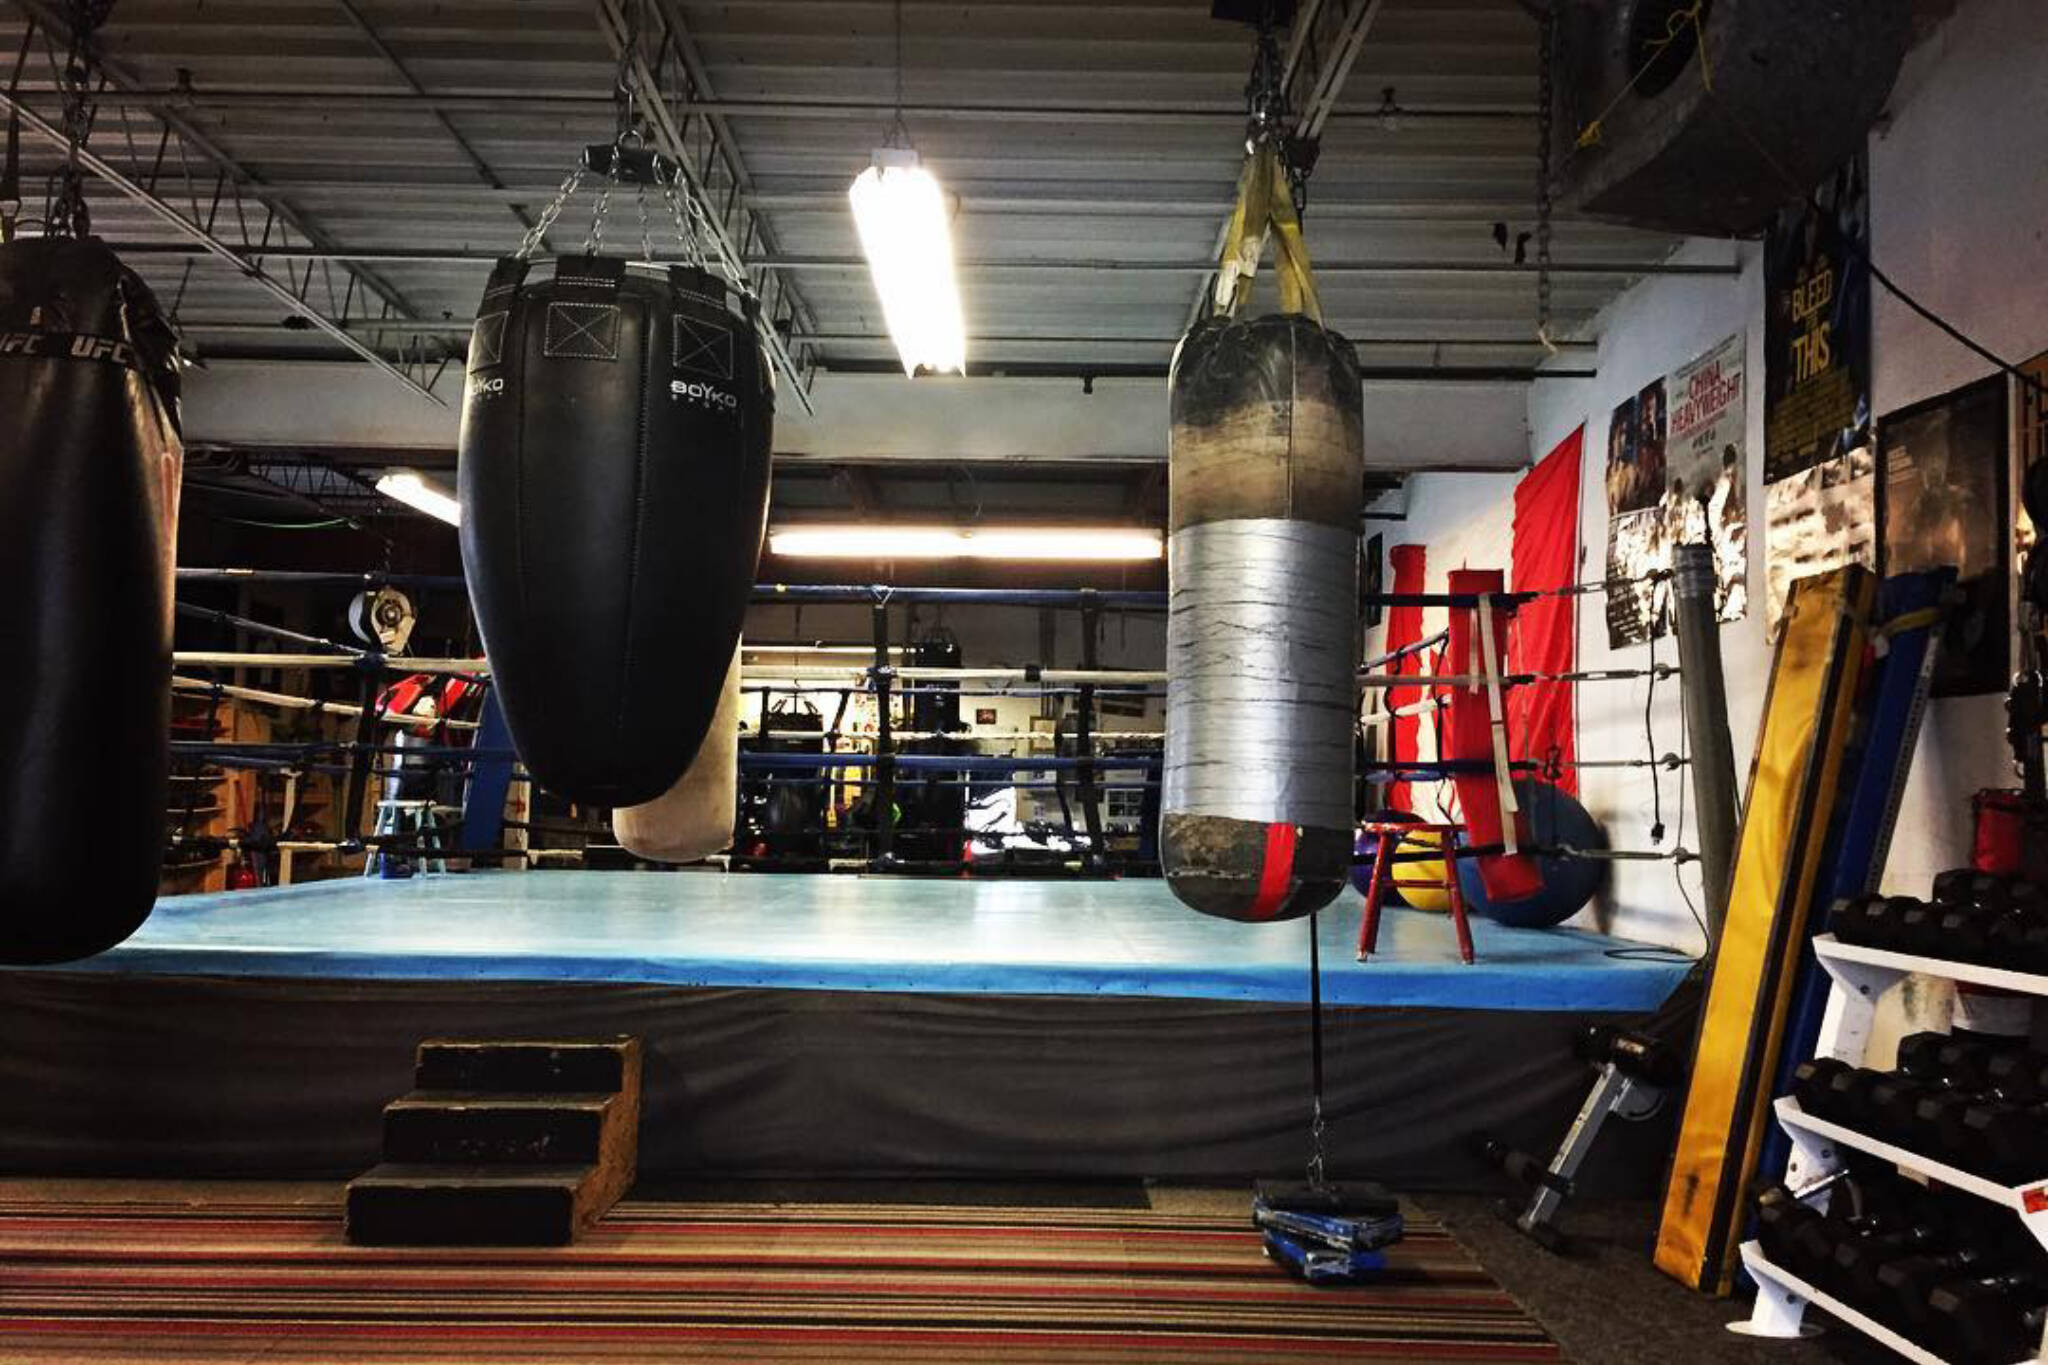 sullys boxing club